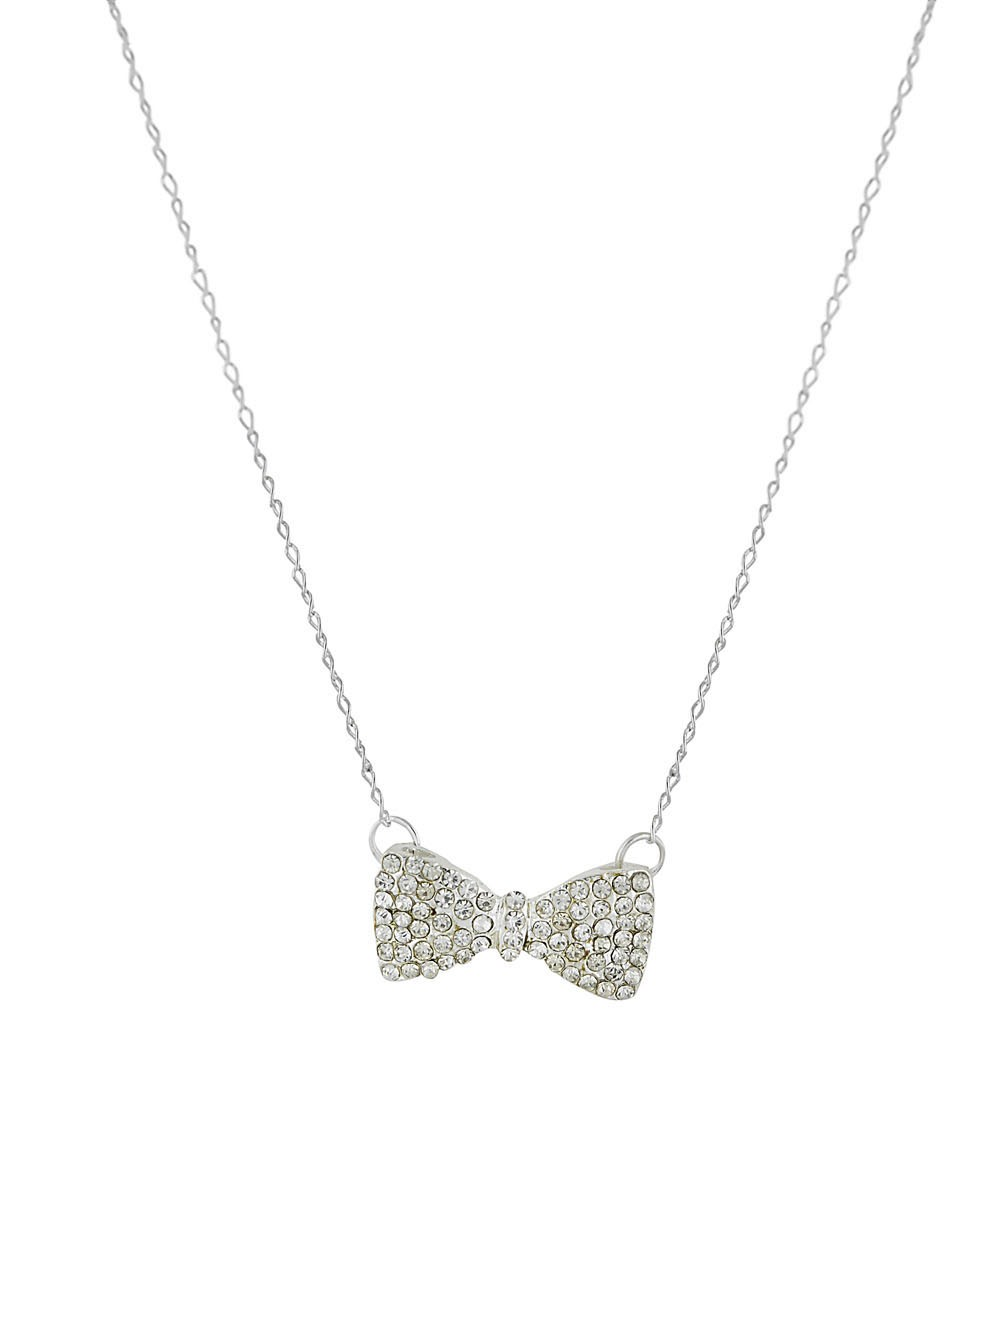 Silver Tone Bow Pendant Necklace